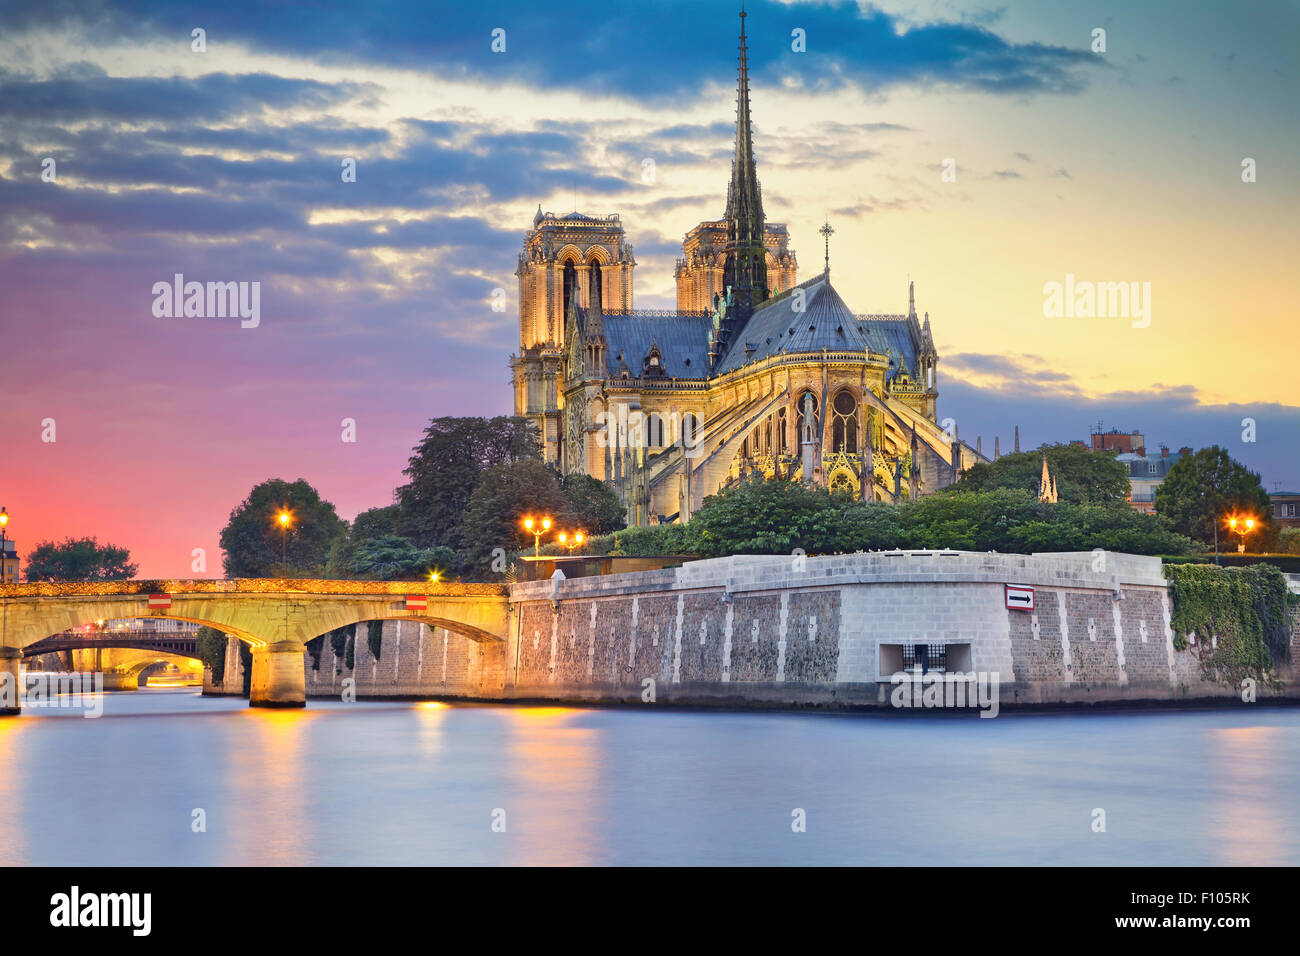 Image of Notre Dame Cathedral at dusk in Paris, France. - Stock Image